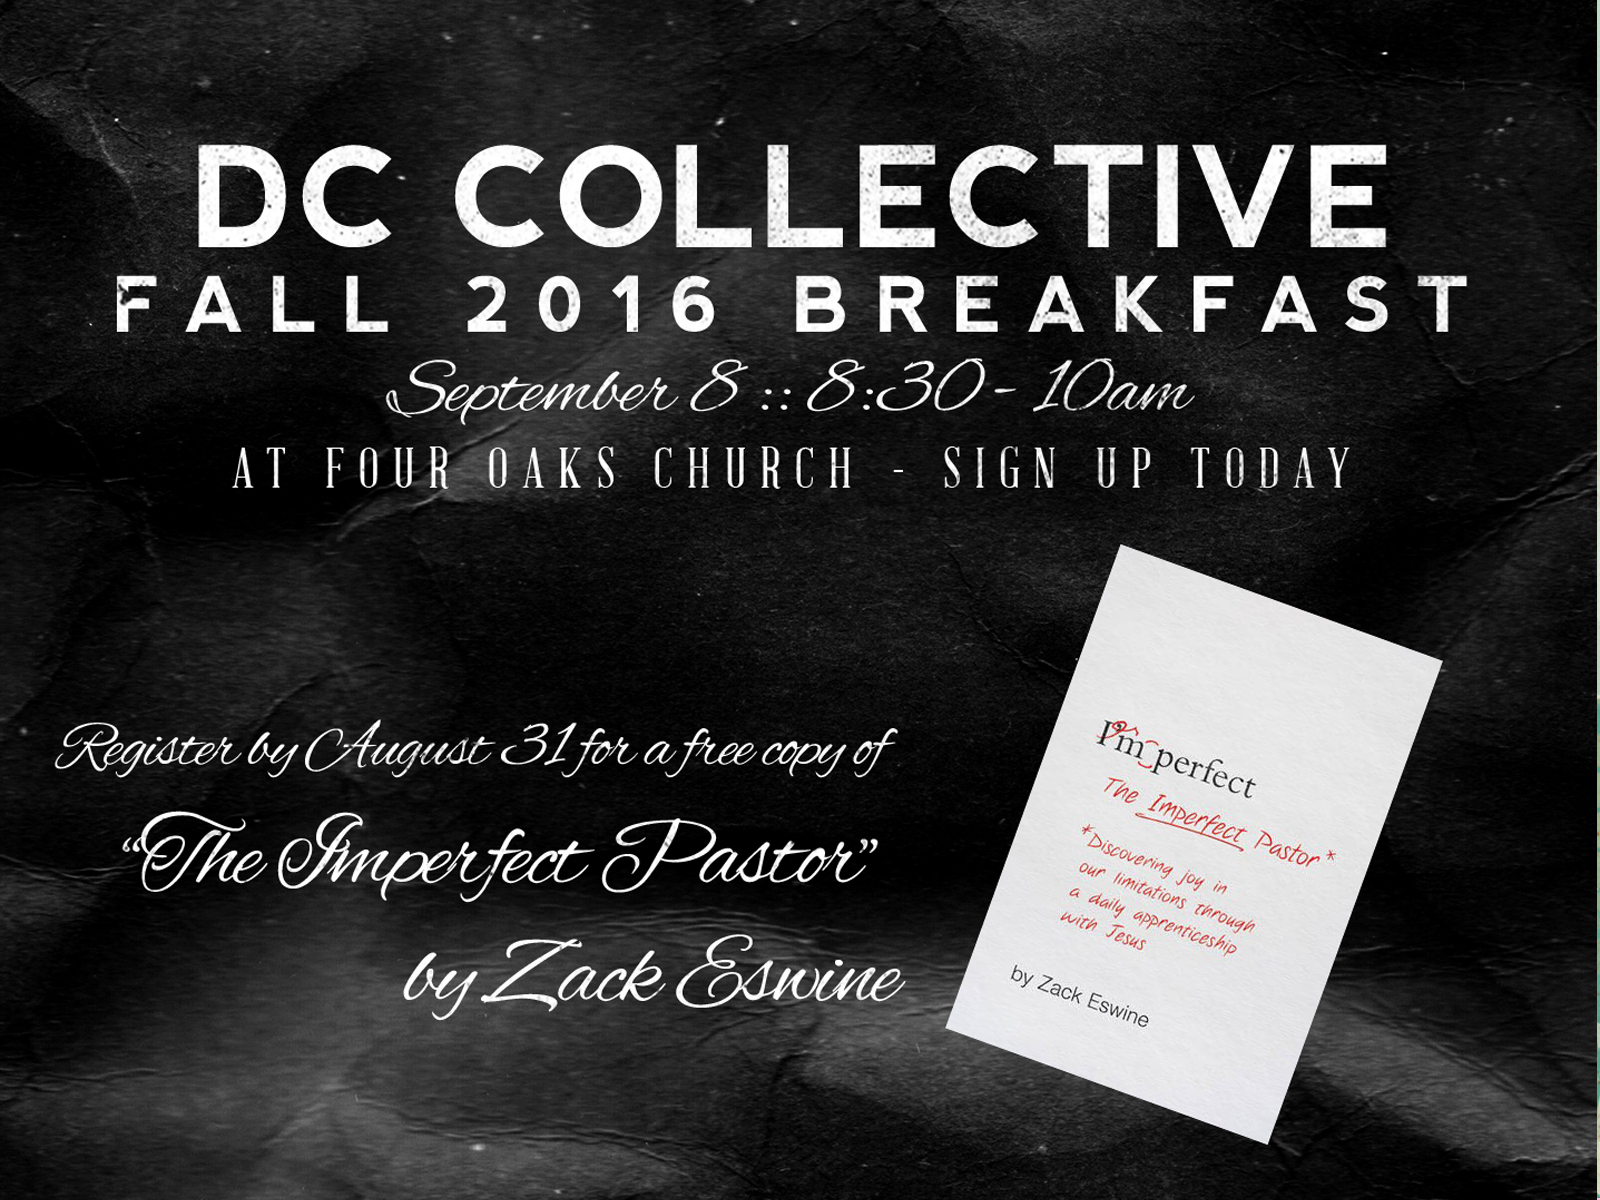 """The DC Collective Fall 2016 Breakfast will be on September 8, from 8:30am-10am, at Four Oaks Church. Bob Evans will speak on """"Suffering and the Pastor's Soul.""""  Everyone who signs up by August 31 will receive a free copy of the book  The Imperfect Pastor  by Zach Eswine.    Sign up here"""